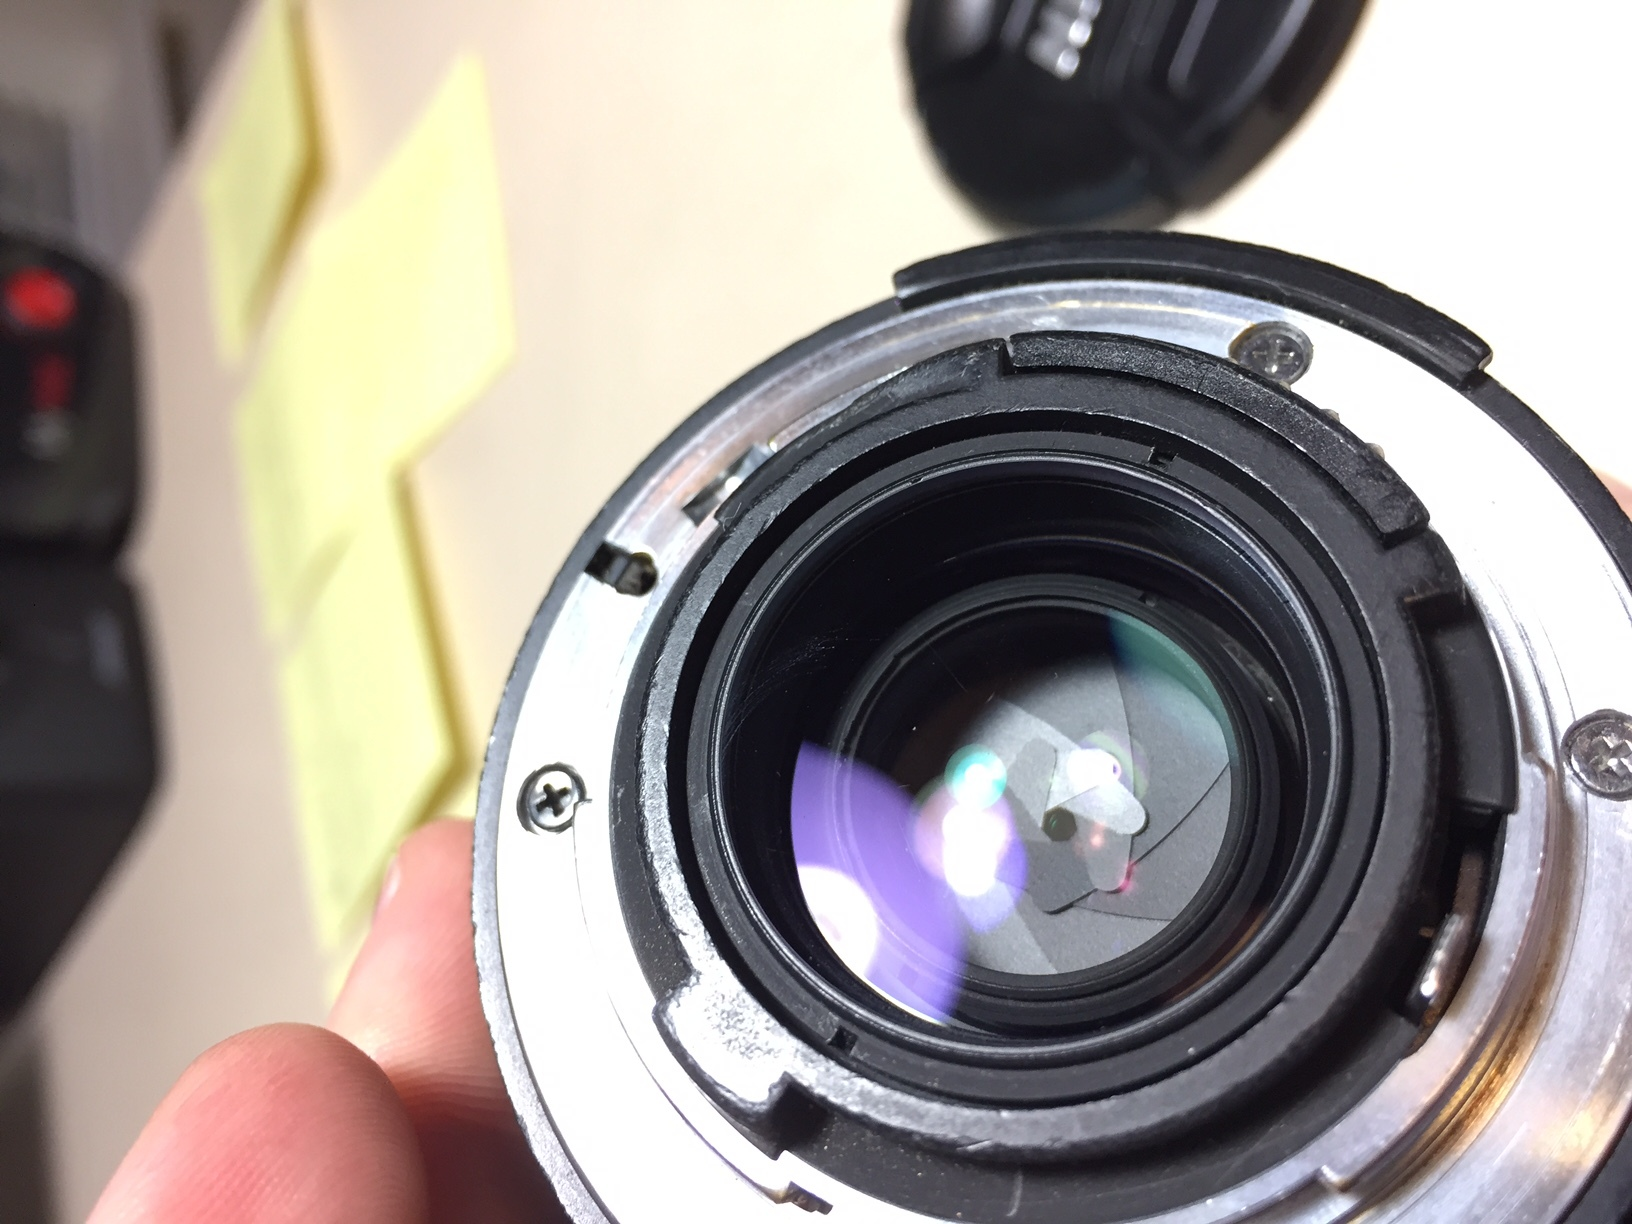 Focus Ring Is A Little Loose